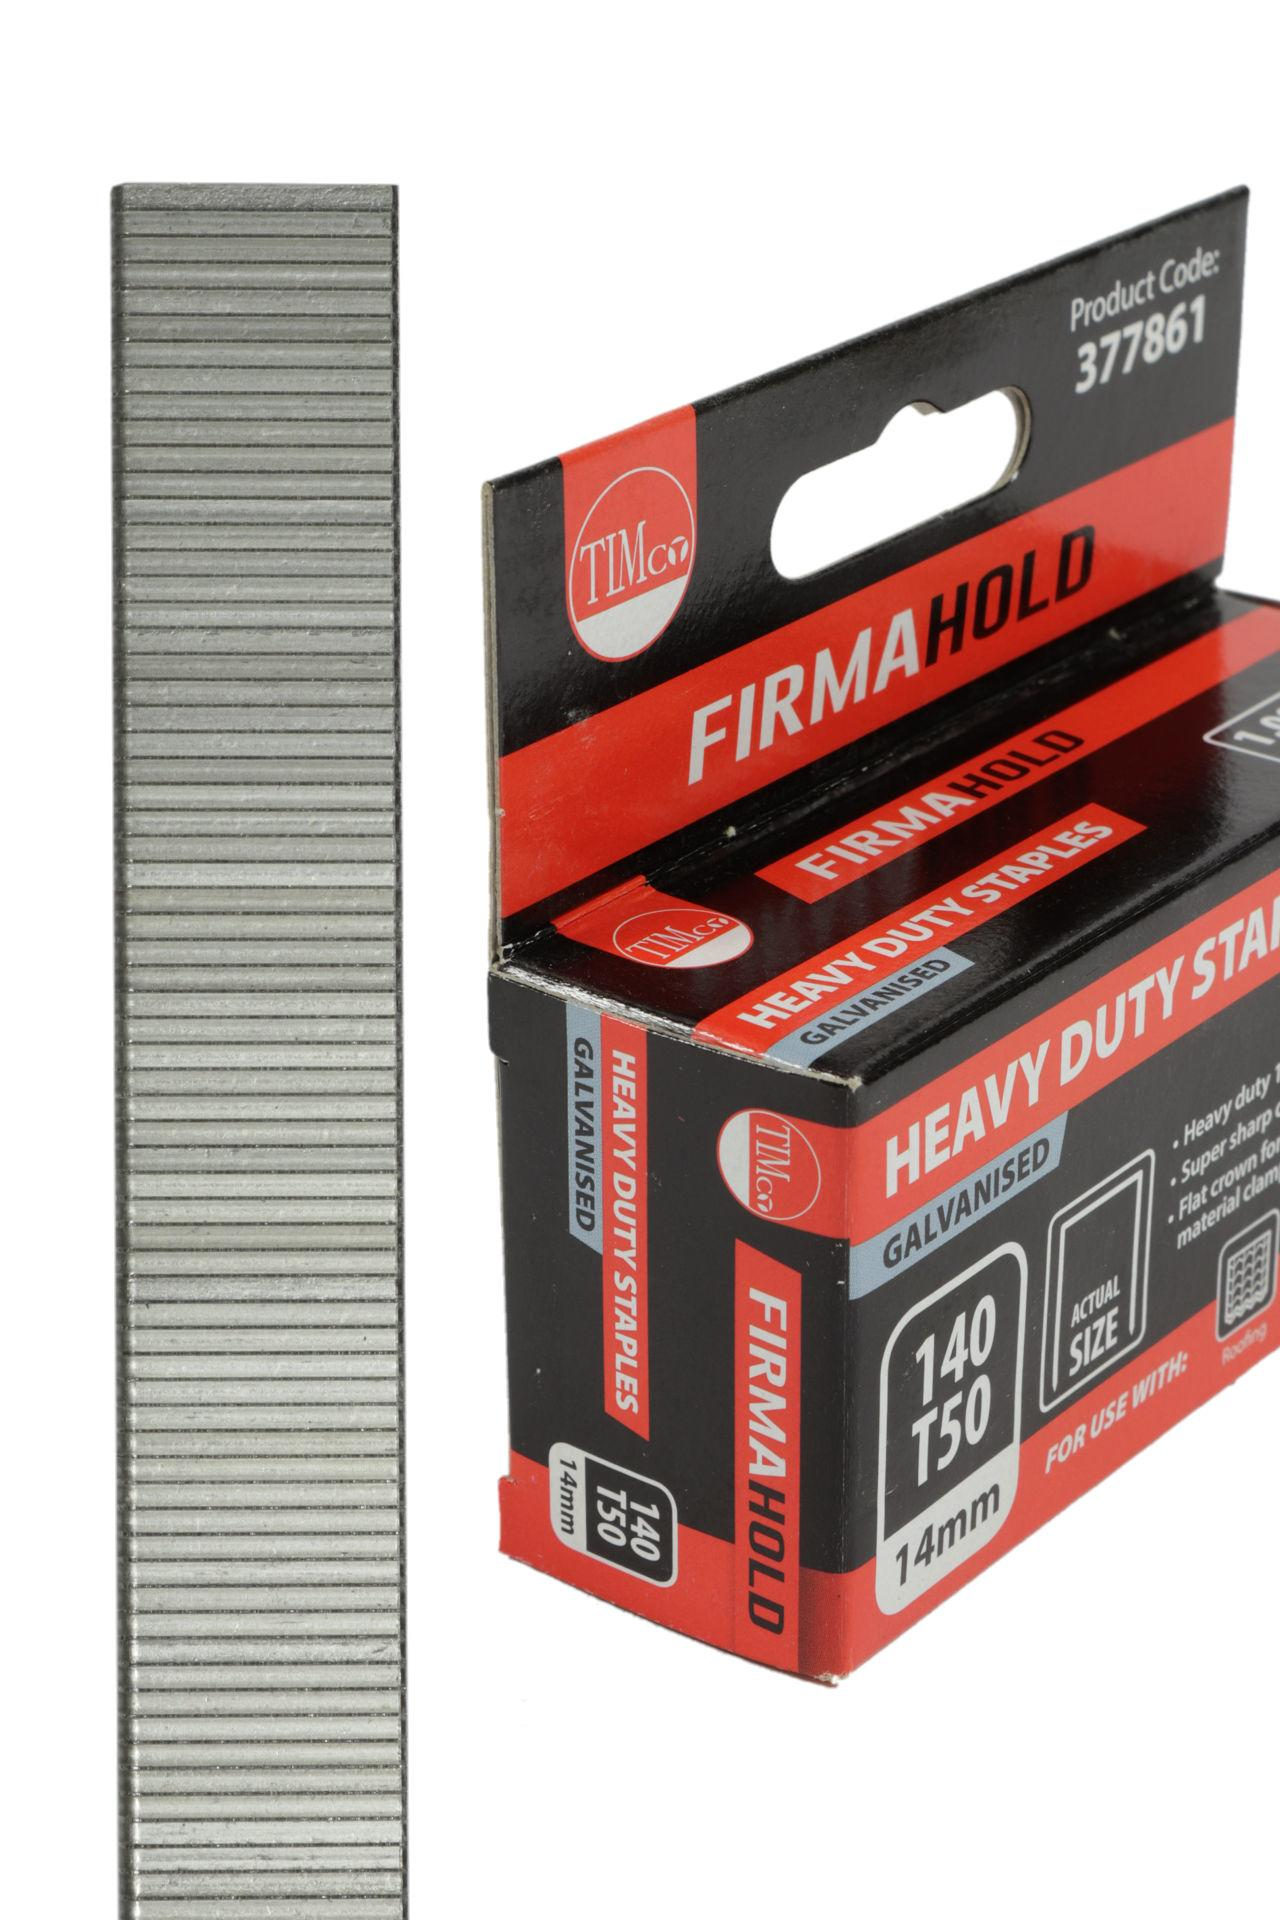 Heavy Duty Galvanised Staples #1